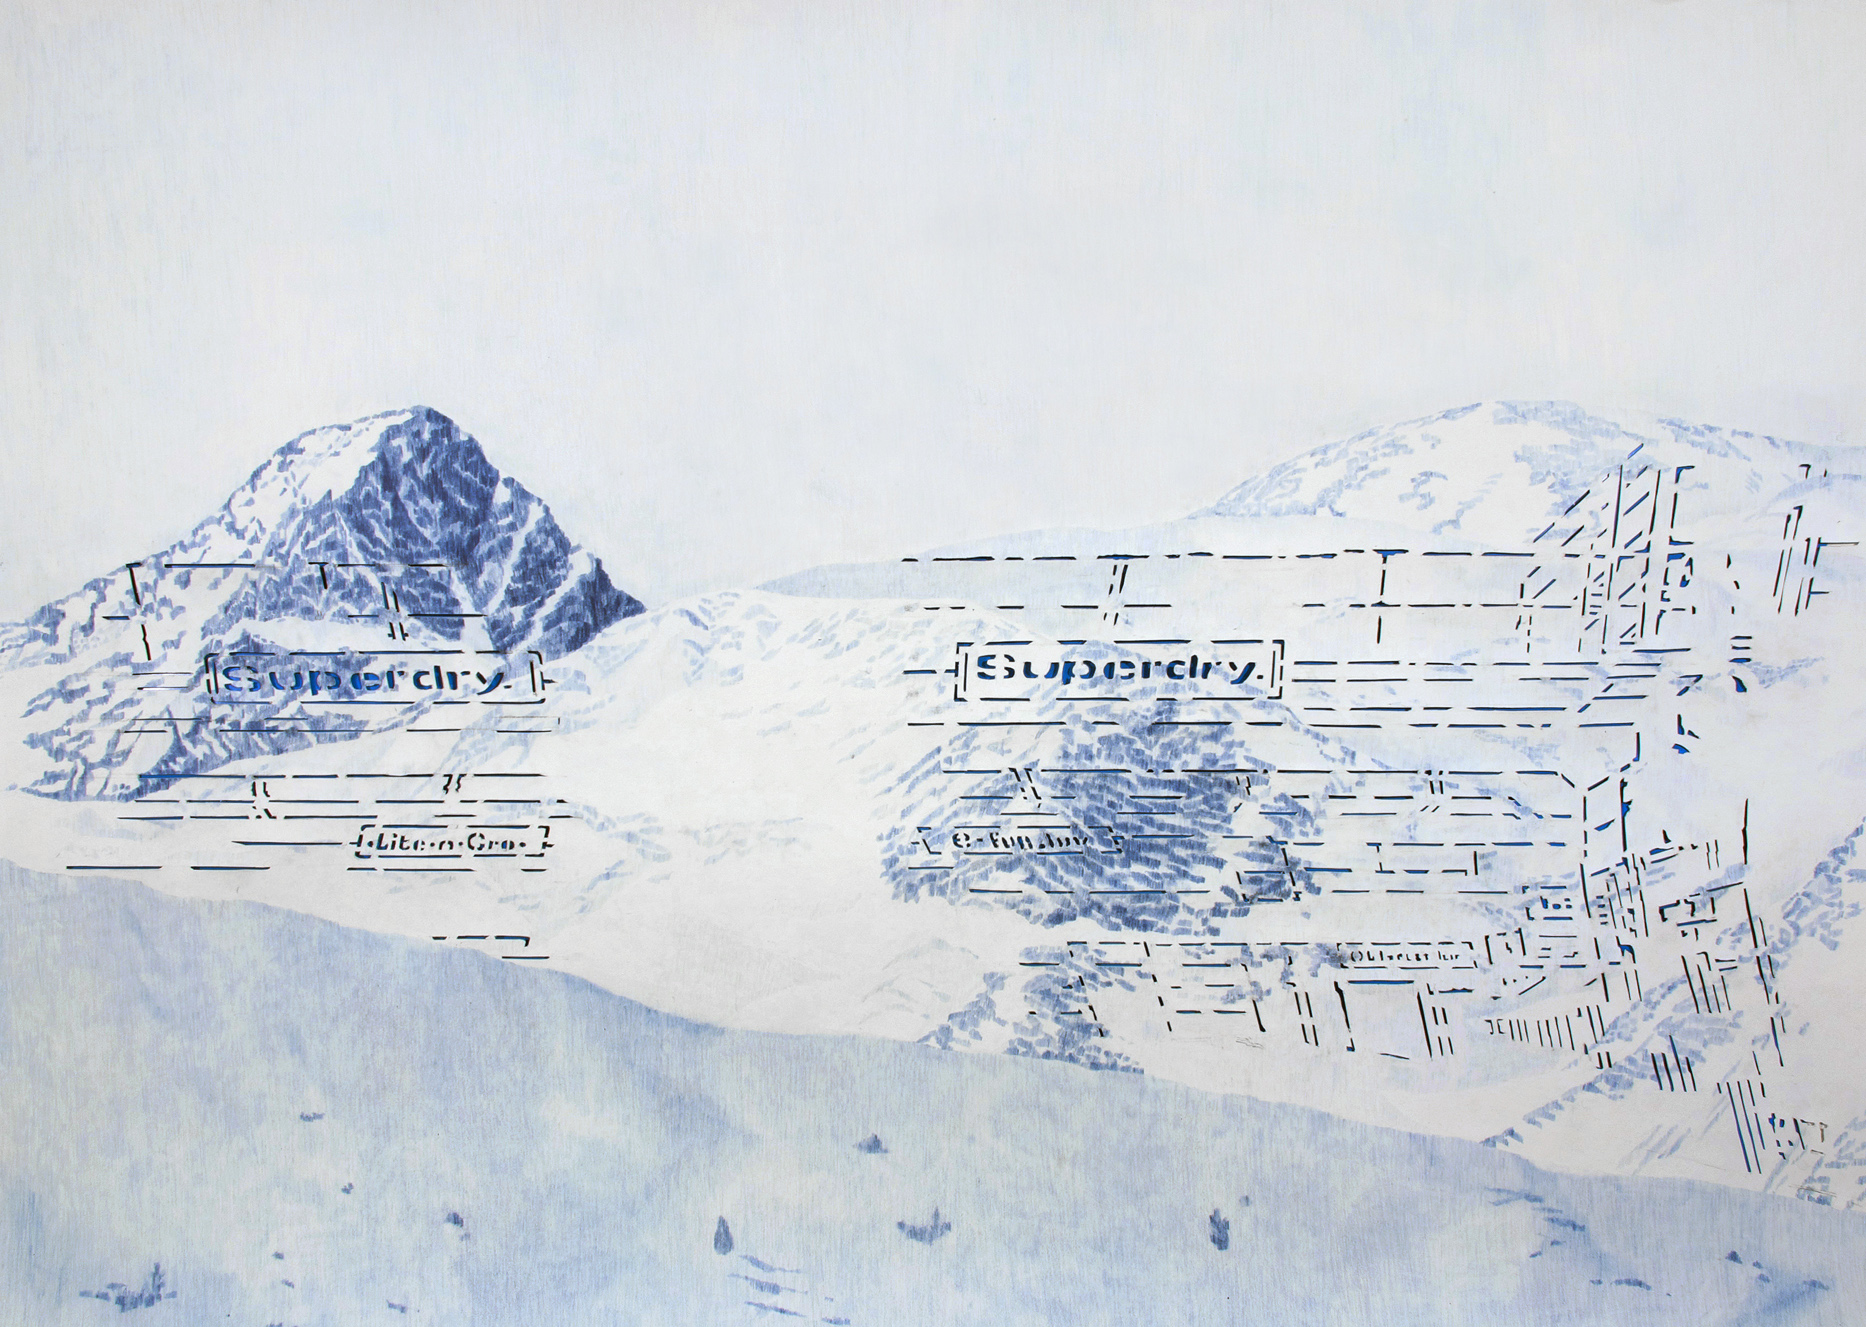 Superdry and other panoramas @ MOP Gallery, 23 July- 17 Aug